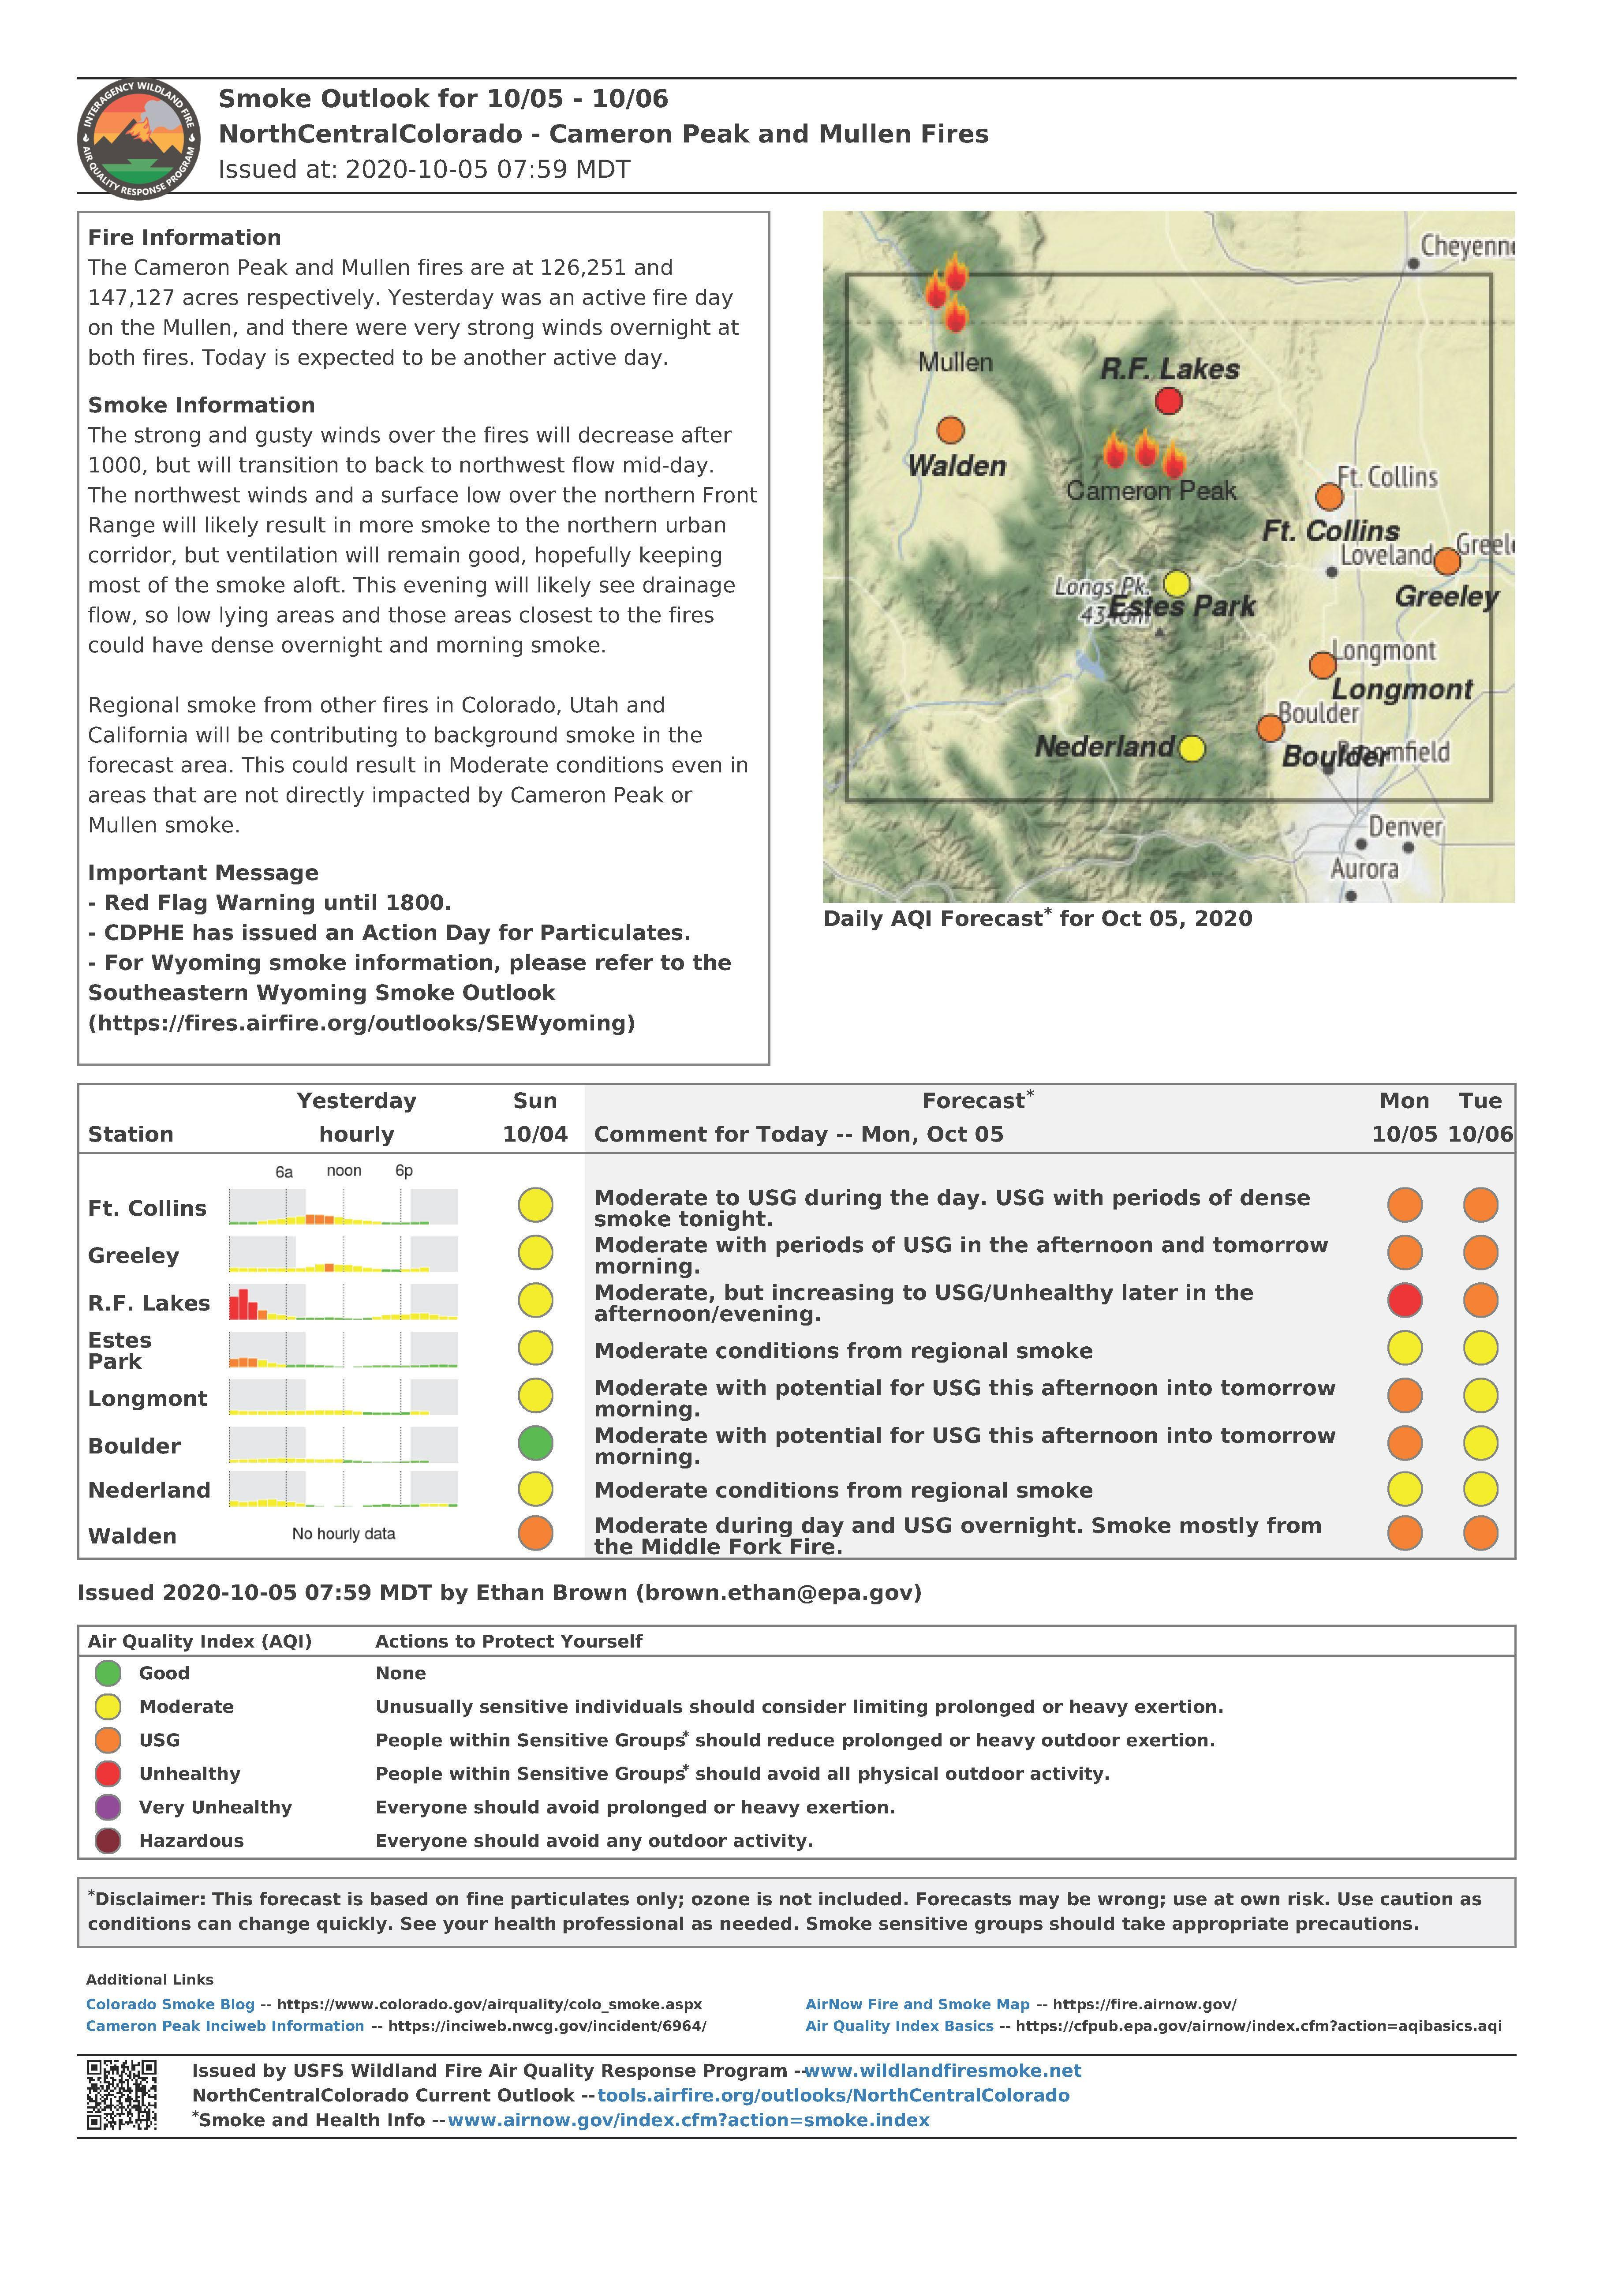 Predicted smoke levels and health risks assessment for north central Colorado for October 5-6, 2020, including the Cameron Peak and Mullen Fires